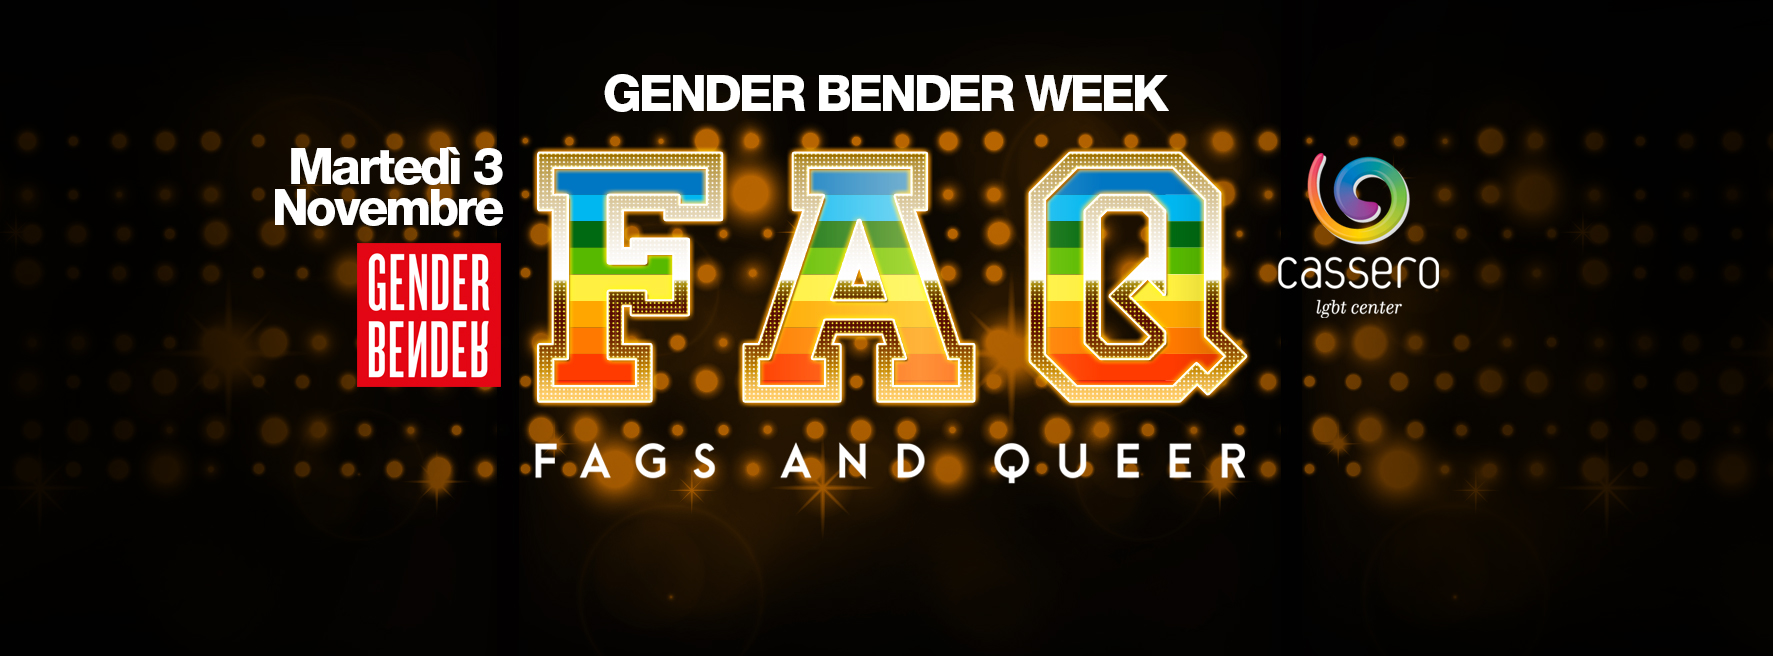 FAQ meets Gender Bender